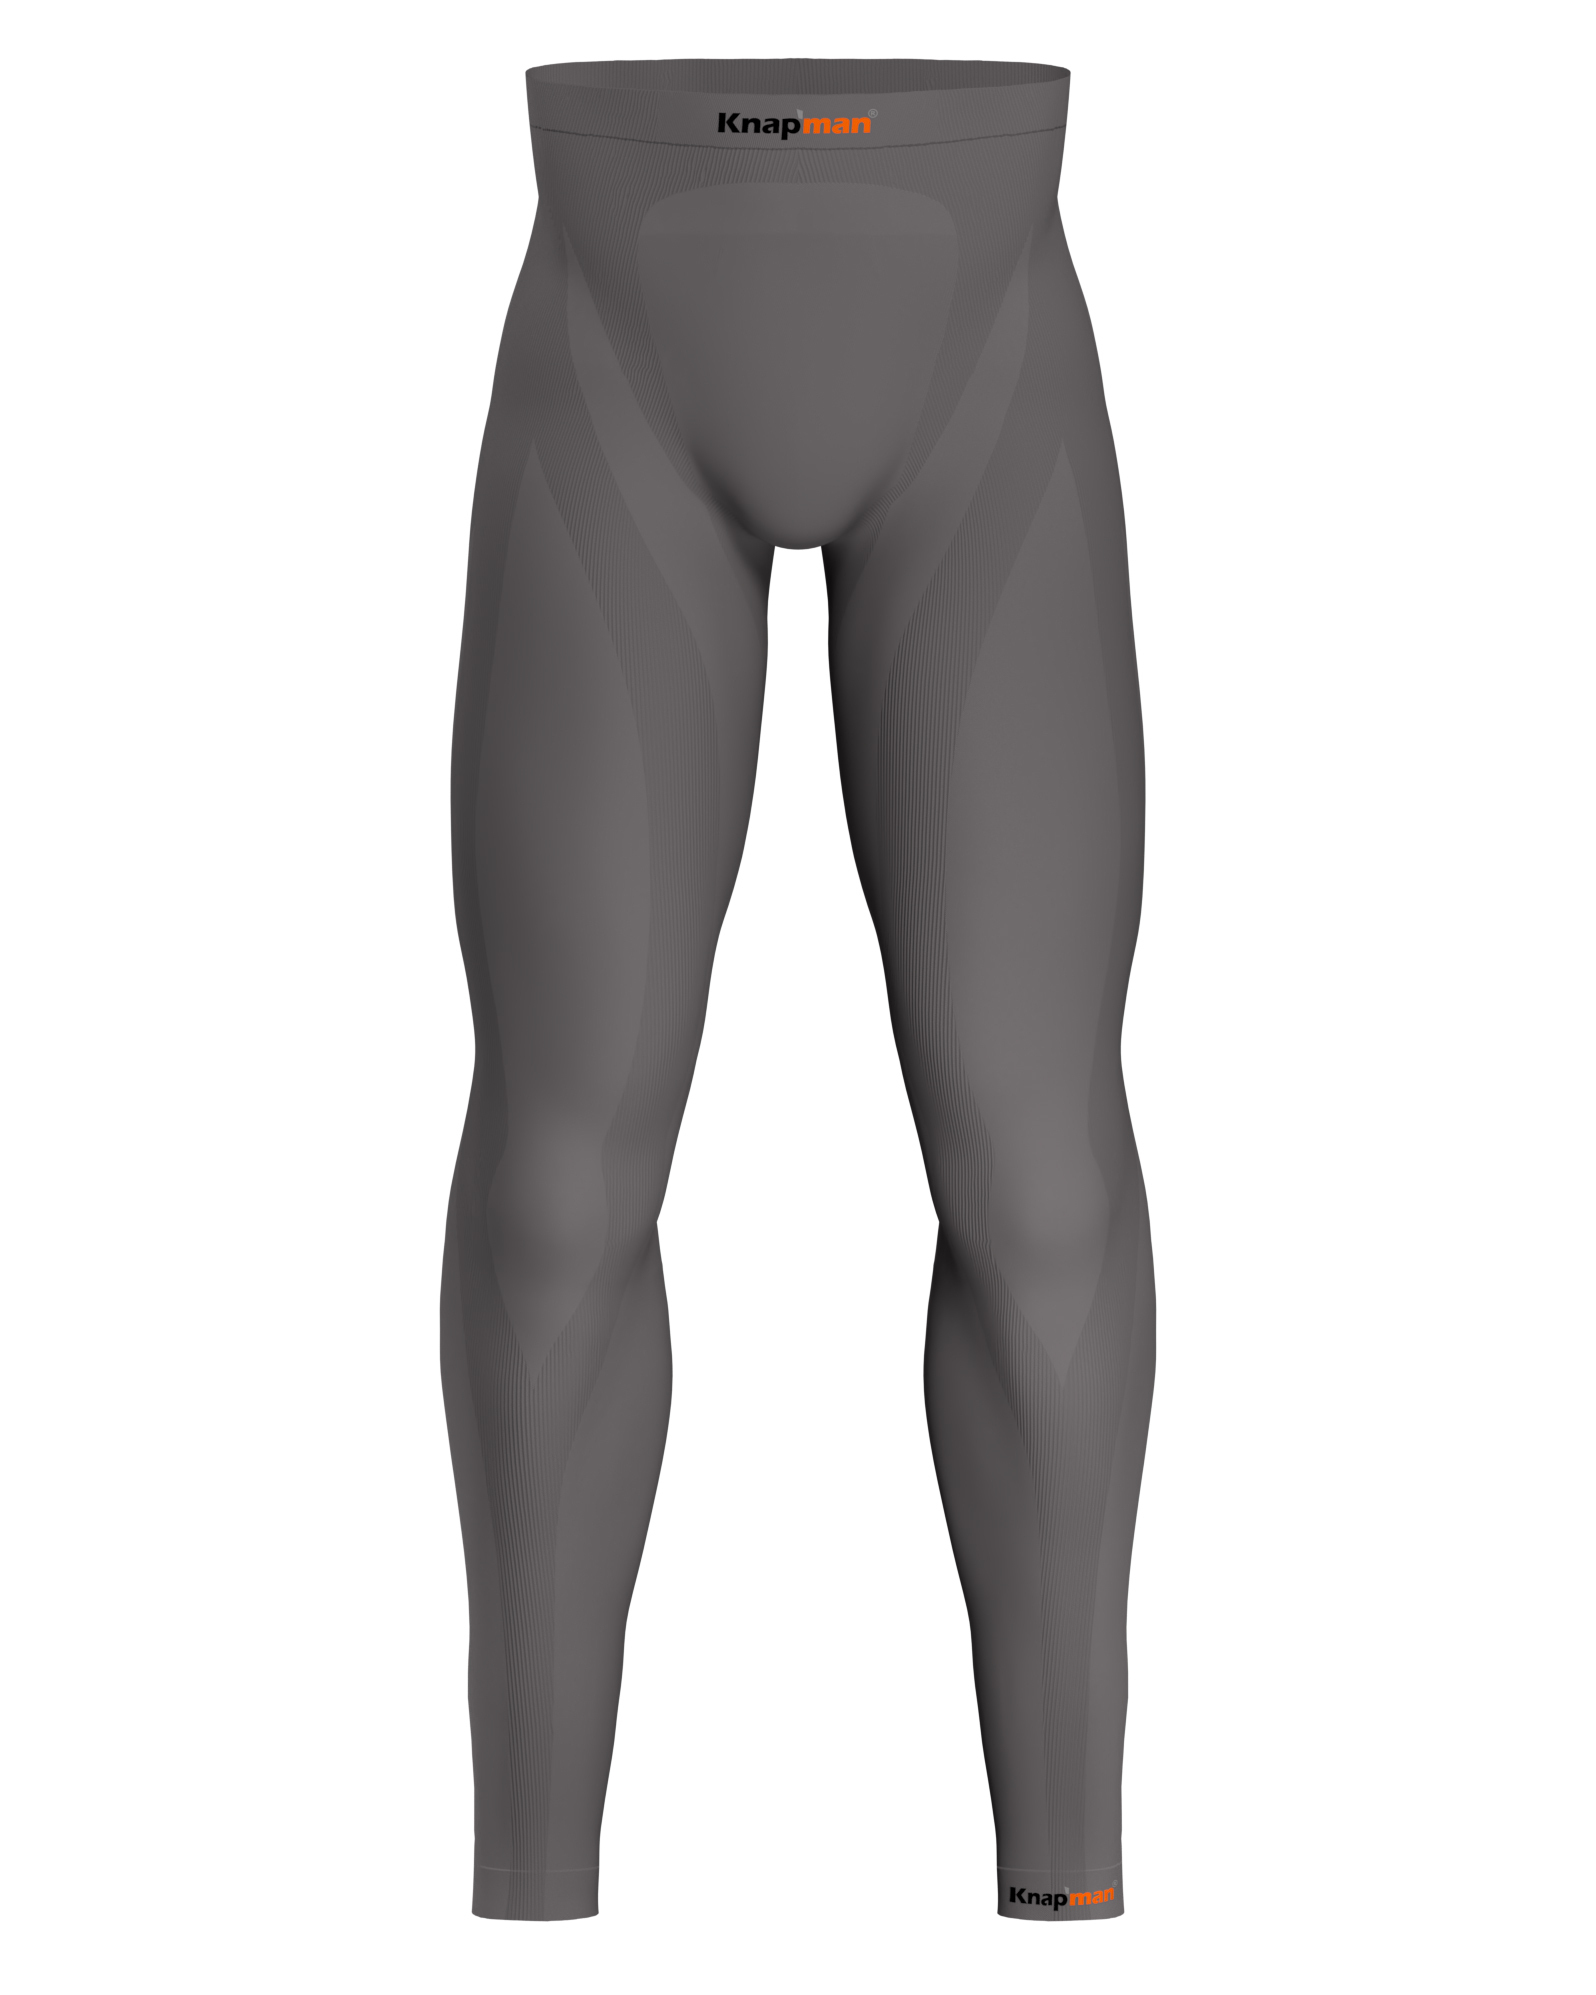 Knap'man Herren Kompression Tights 45% Grau